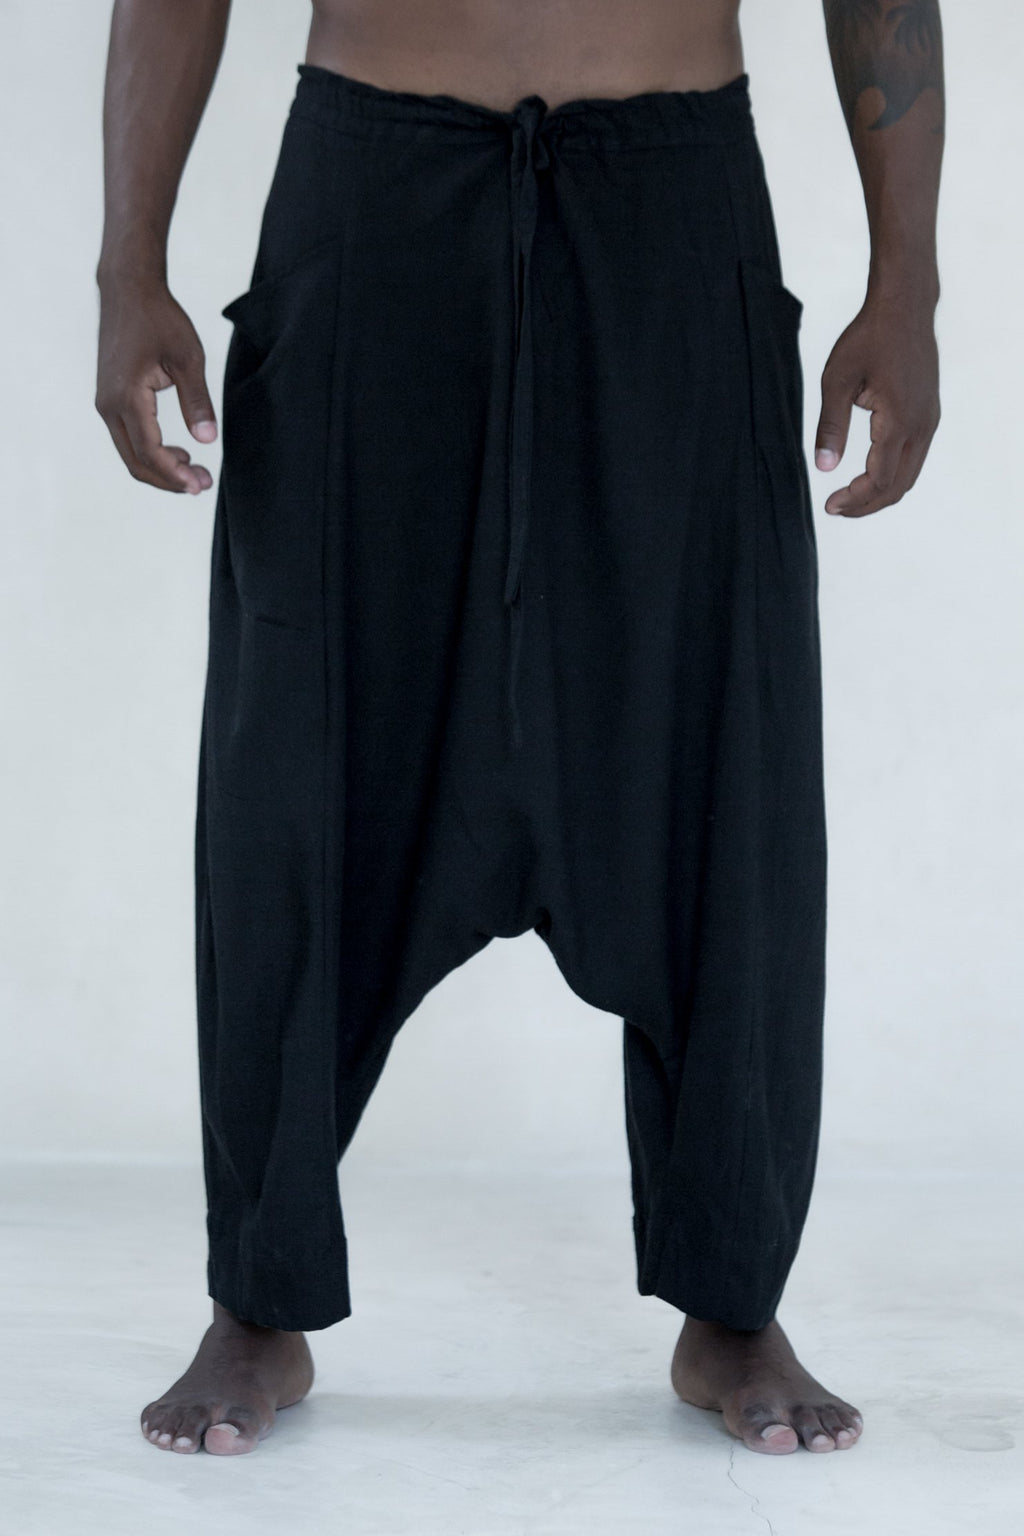 Black Mandarine Pants